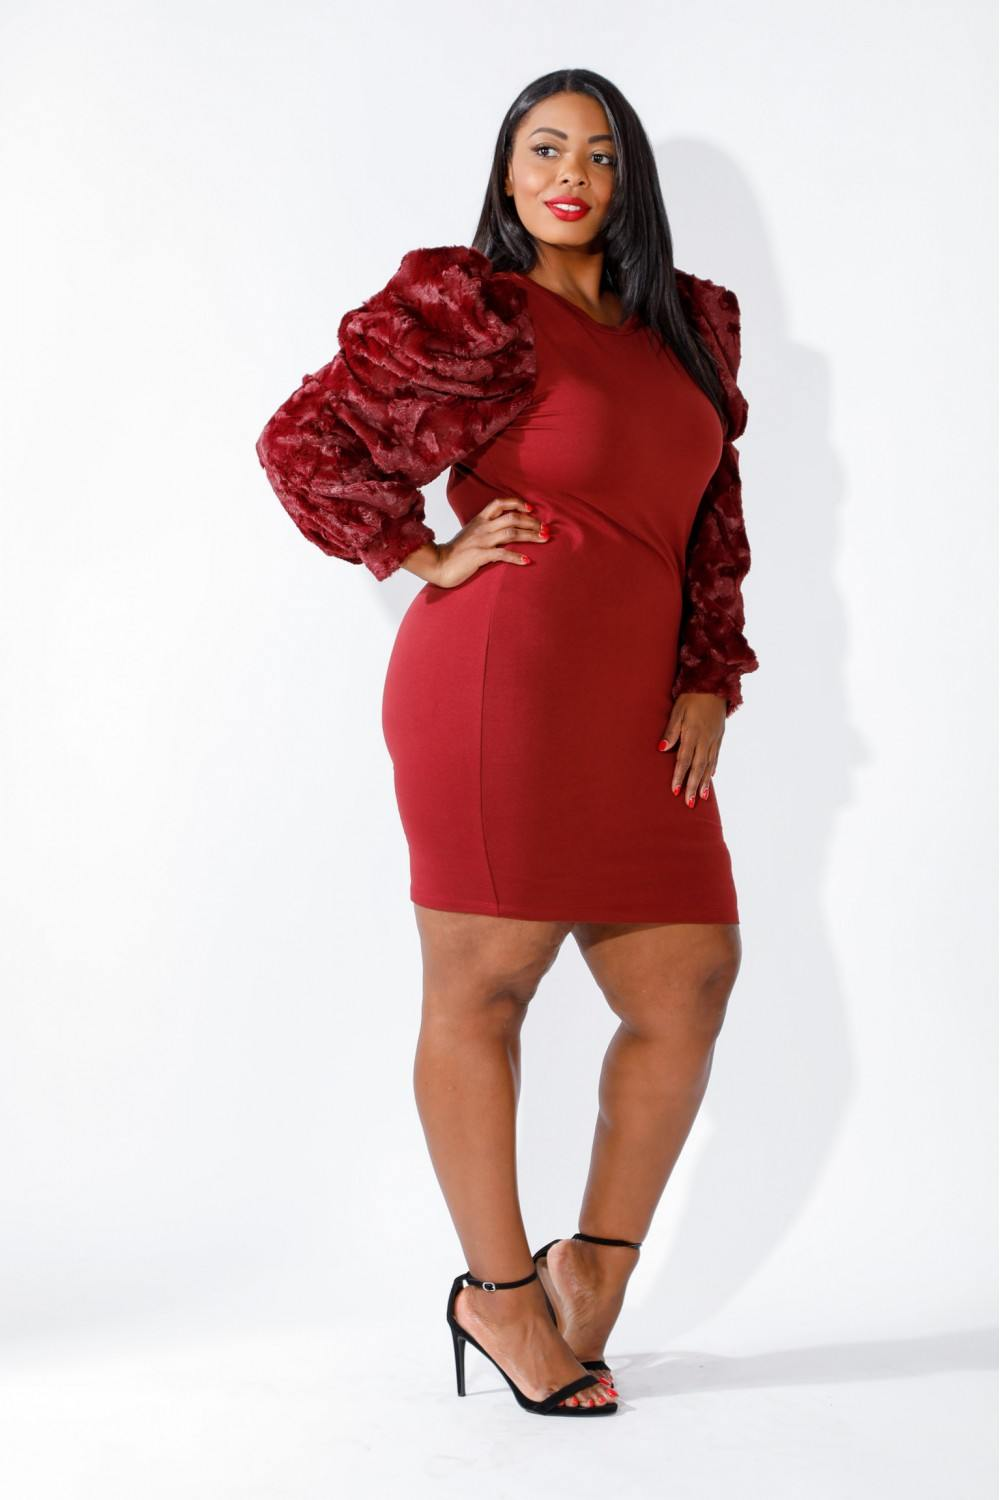 slaythedaybydcole,Faux Fur Power Shoulder Dress,Slay The Day By D Cole,